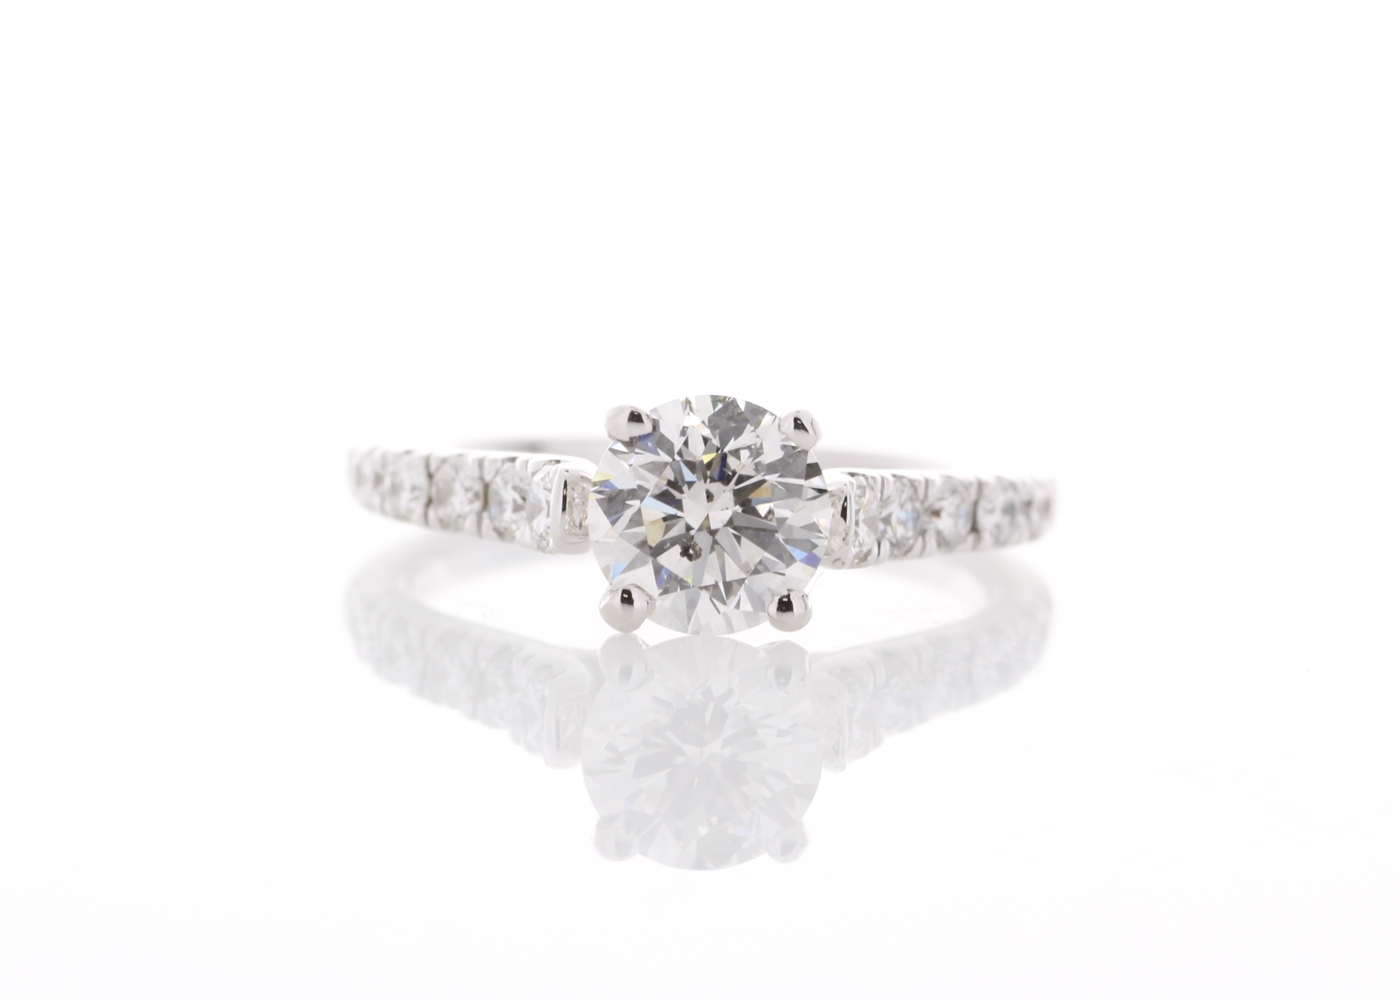 18ct White Gold Stone Set Shoulders Diamond Ring 1.47 Carats